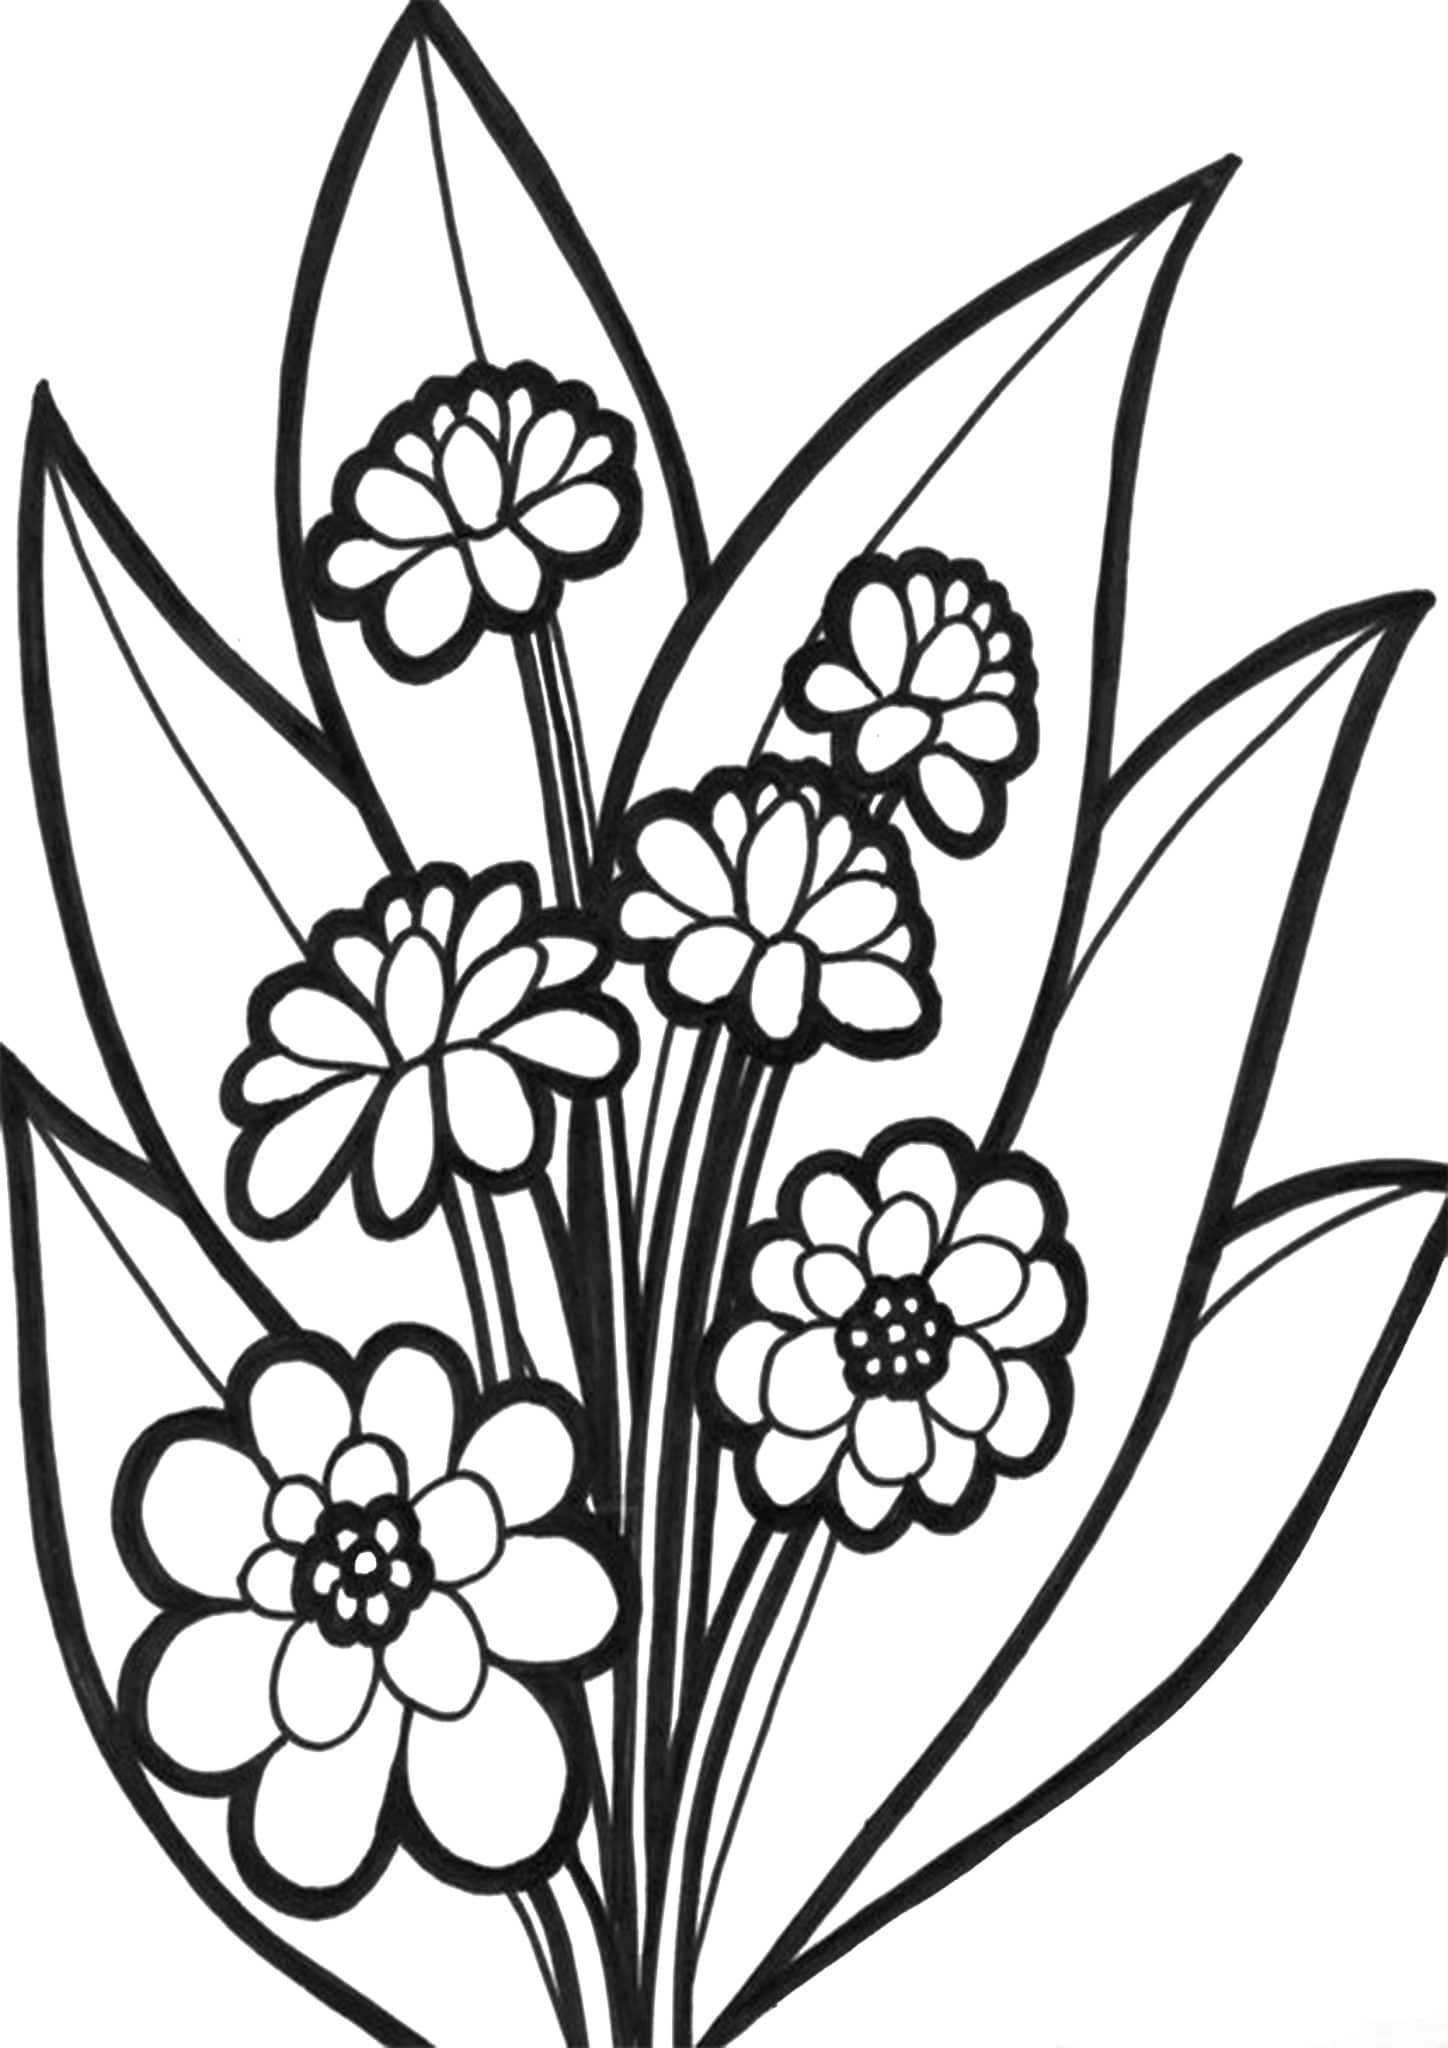 flowers to print out flower coloring pages to print out at getdrawings free out print flowers to